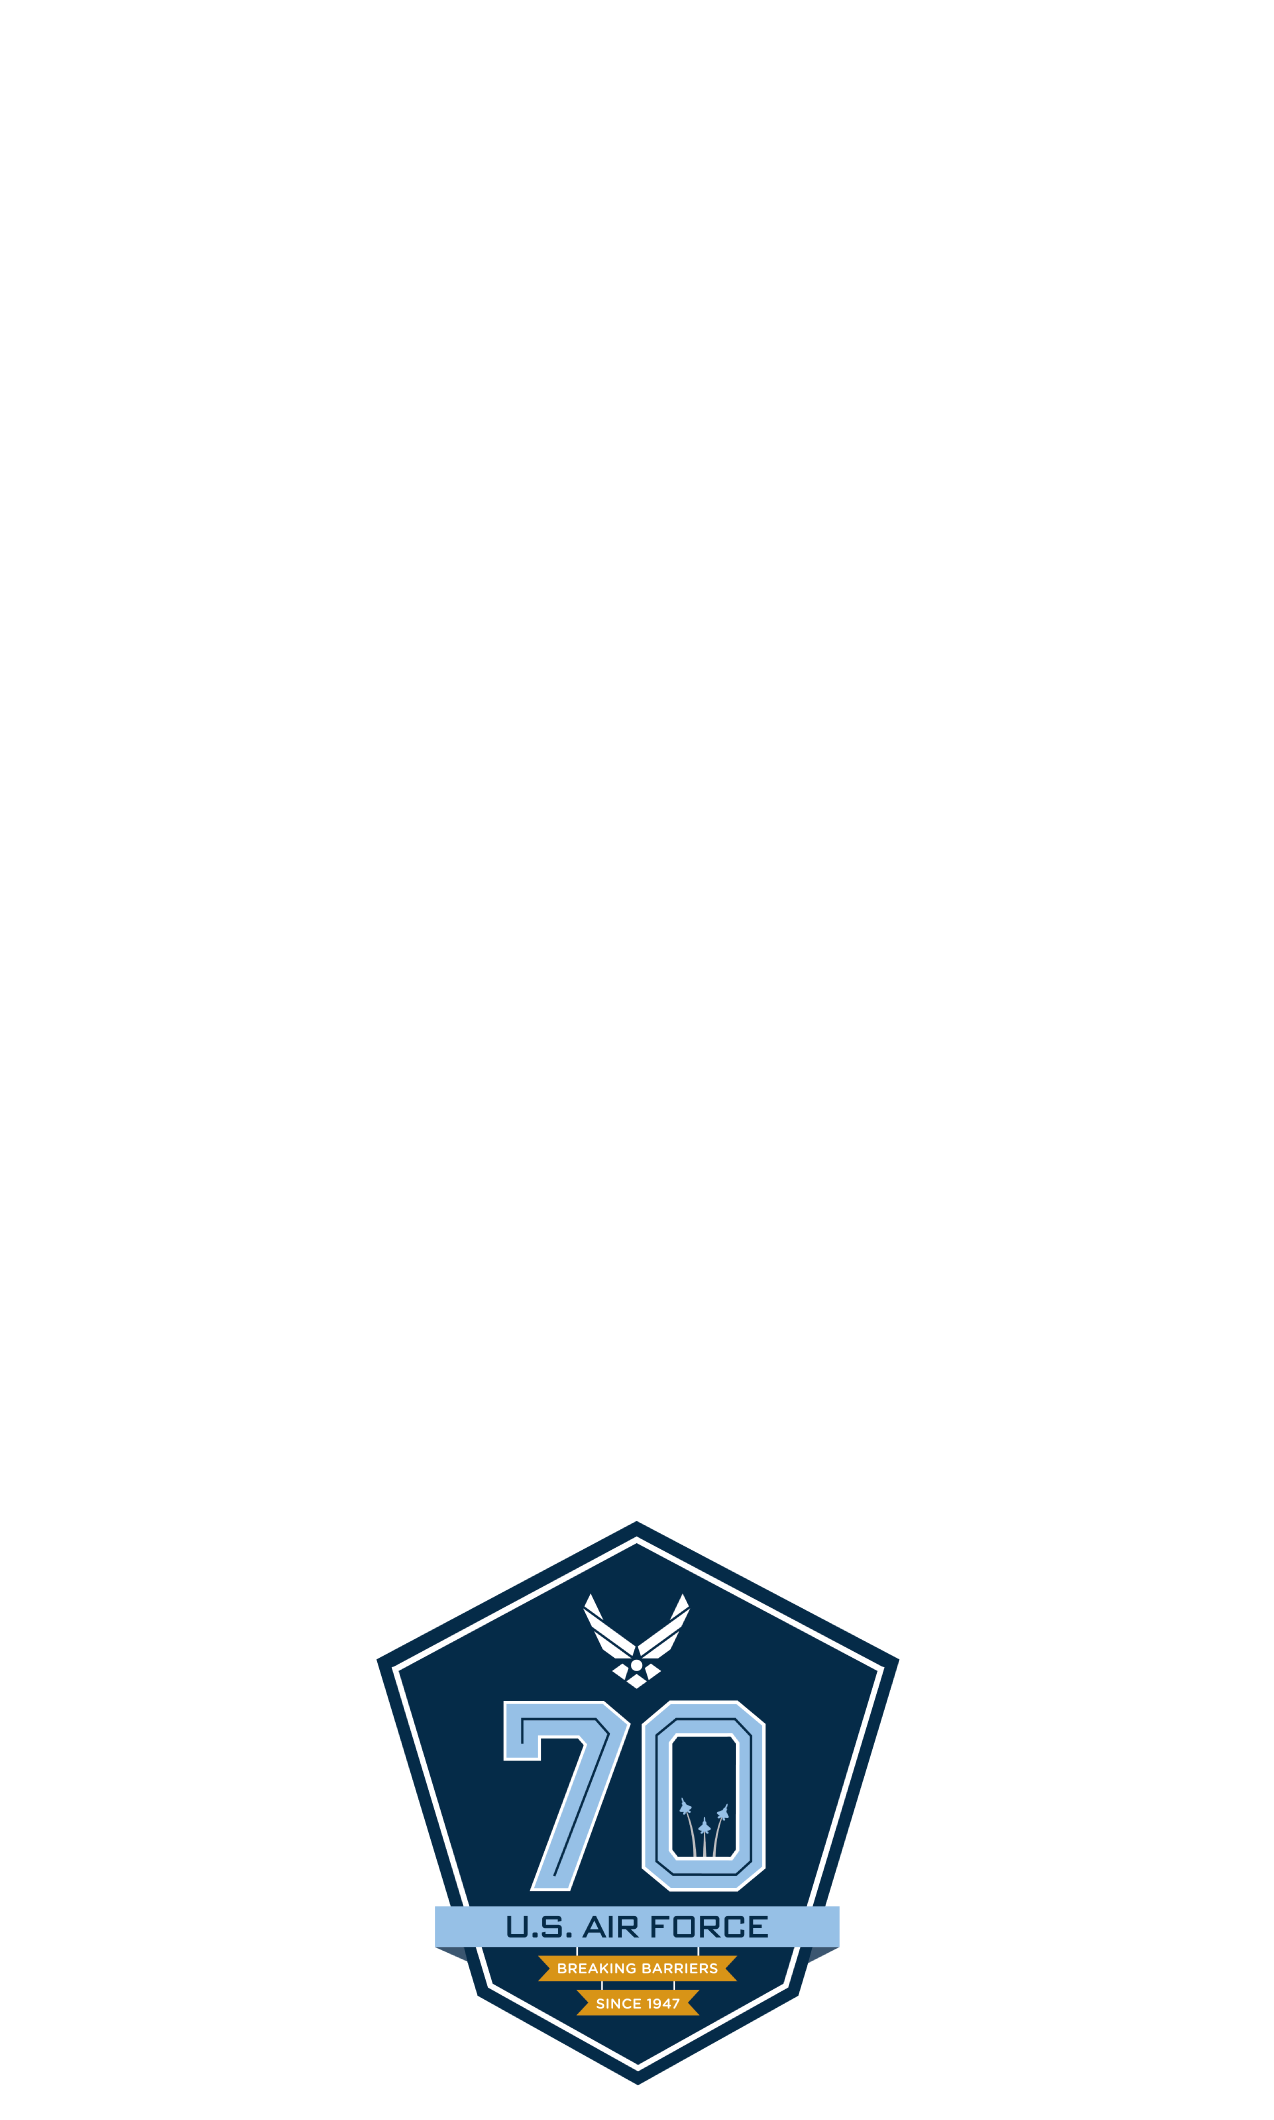 United States Air Force birthday, American Airmen breaking barriers since 1947